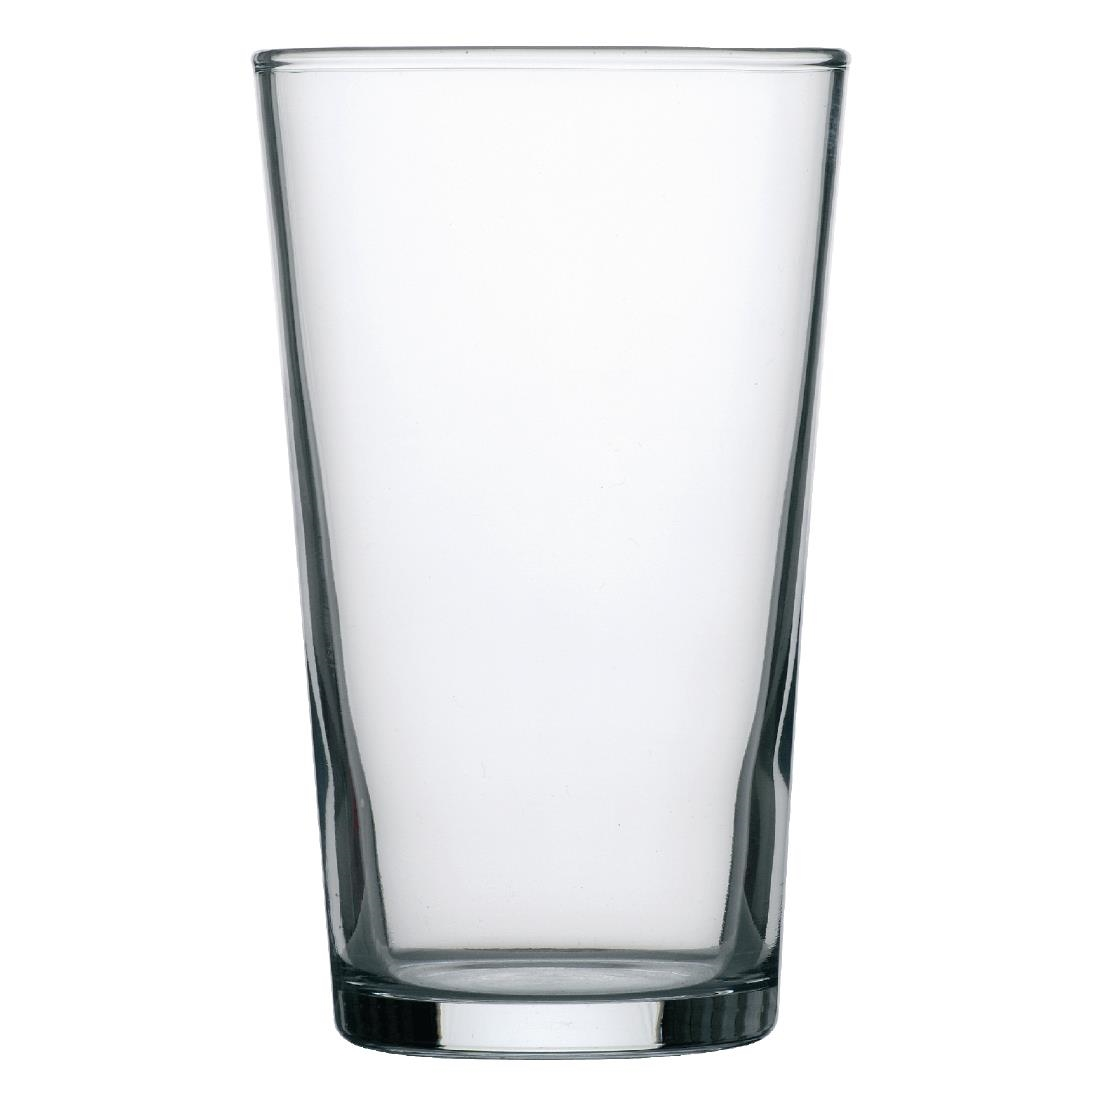 Image of Arcoroc Beer Glasses 285ml CE Marked (Pack of 48) Pack of 48